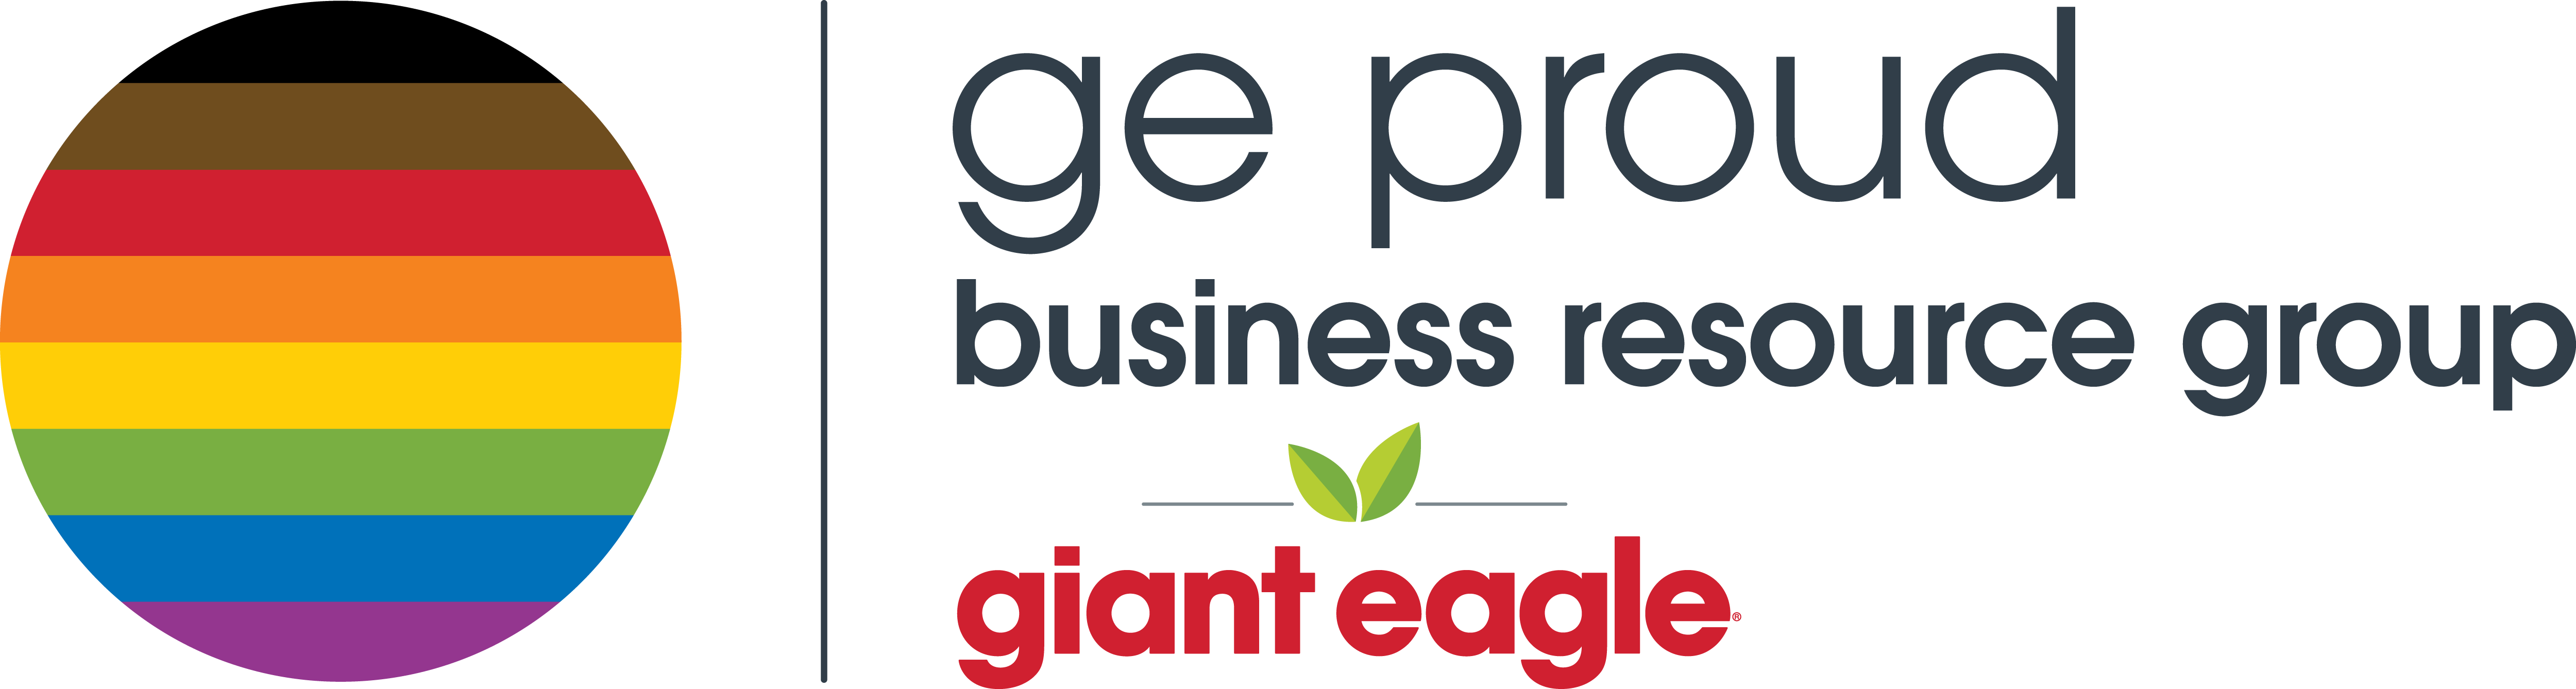 GE Proud Business Resource Group